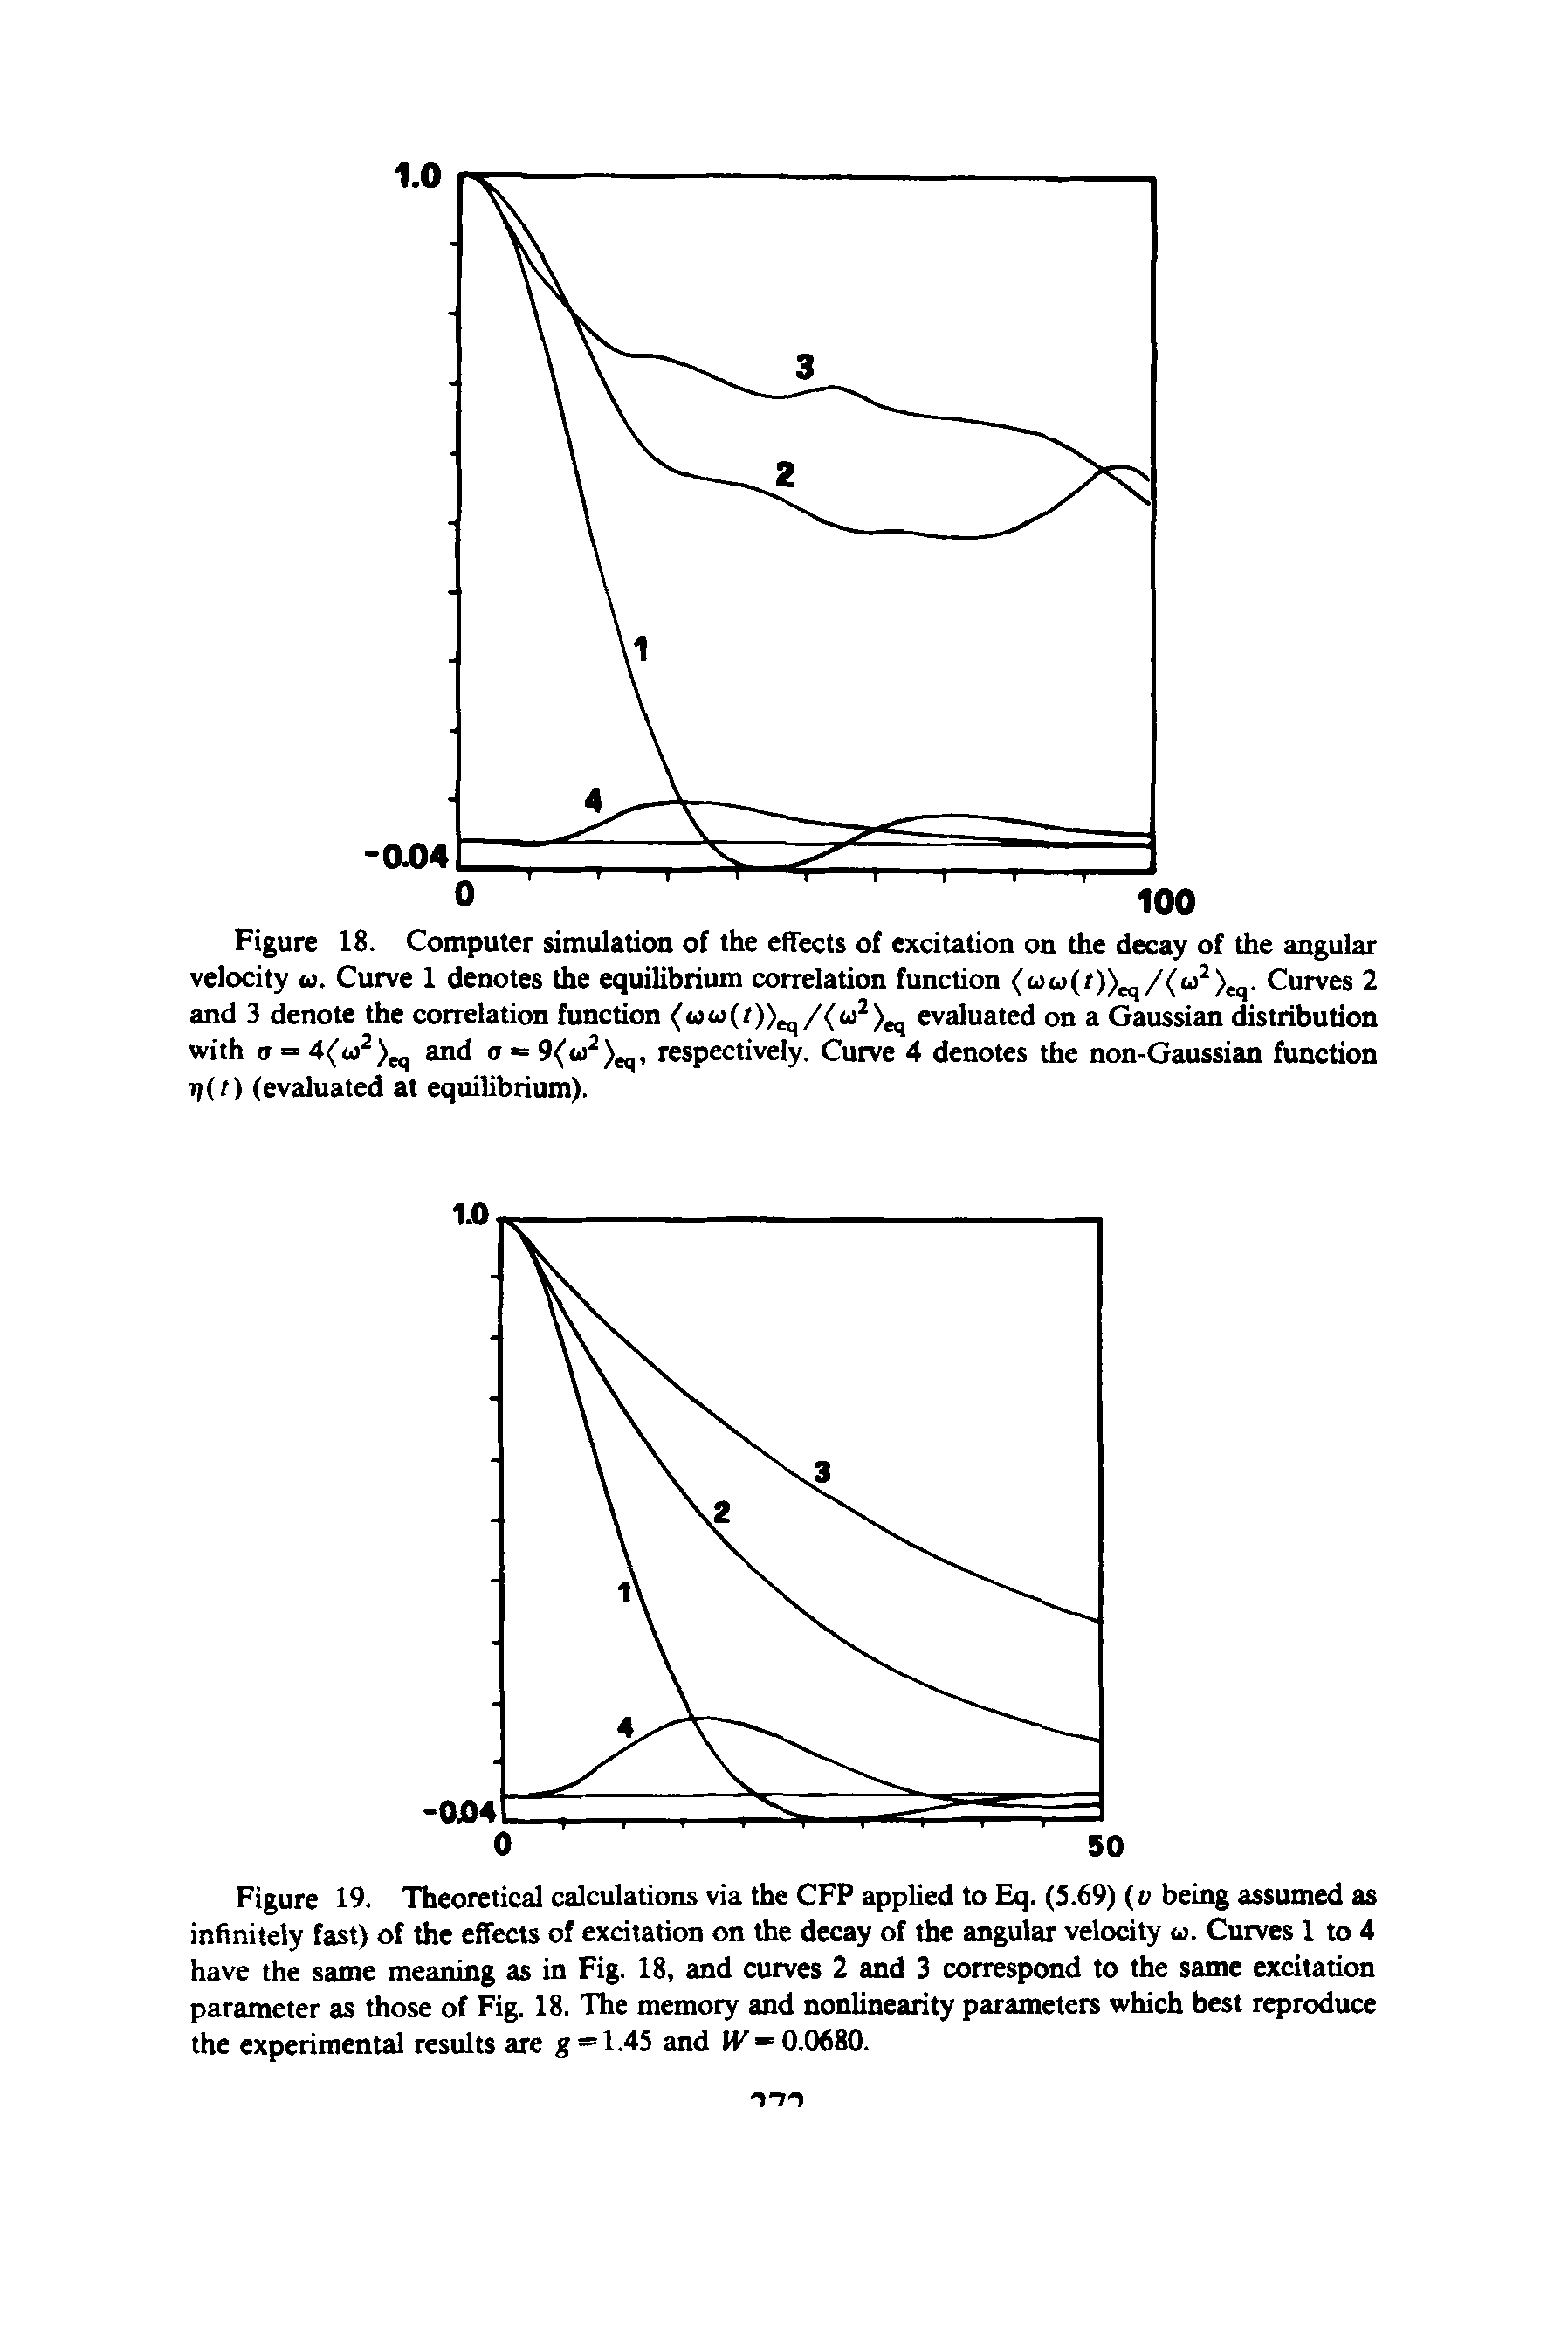 "Figure 19. <a href=""/info/theoretical_calculations"">Theoretical calculations</a> via the CFP applied to Eq. (5.69) (v being assumed as infinitely fast) of the effects of excitation on the decay of the <a href=""/info/angular_velocity"">angular velocity</a> u. Curves 1 to 4 have the <a href=""/info/sameness_meaning"">same meaning</a> as in Fig. 18, and curves 2 and 3 correspond to the same excitation parameter as those of Fig. 18. The memory and <a href=""/info/nonlinearity_parameter"">nonlinearity parameters</a> which best reproduce the experimental results are g = 1.45 and IF = 0.0680."